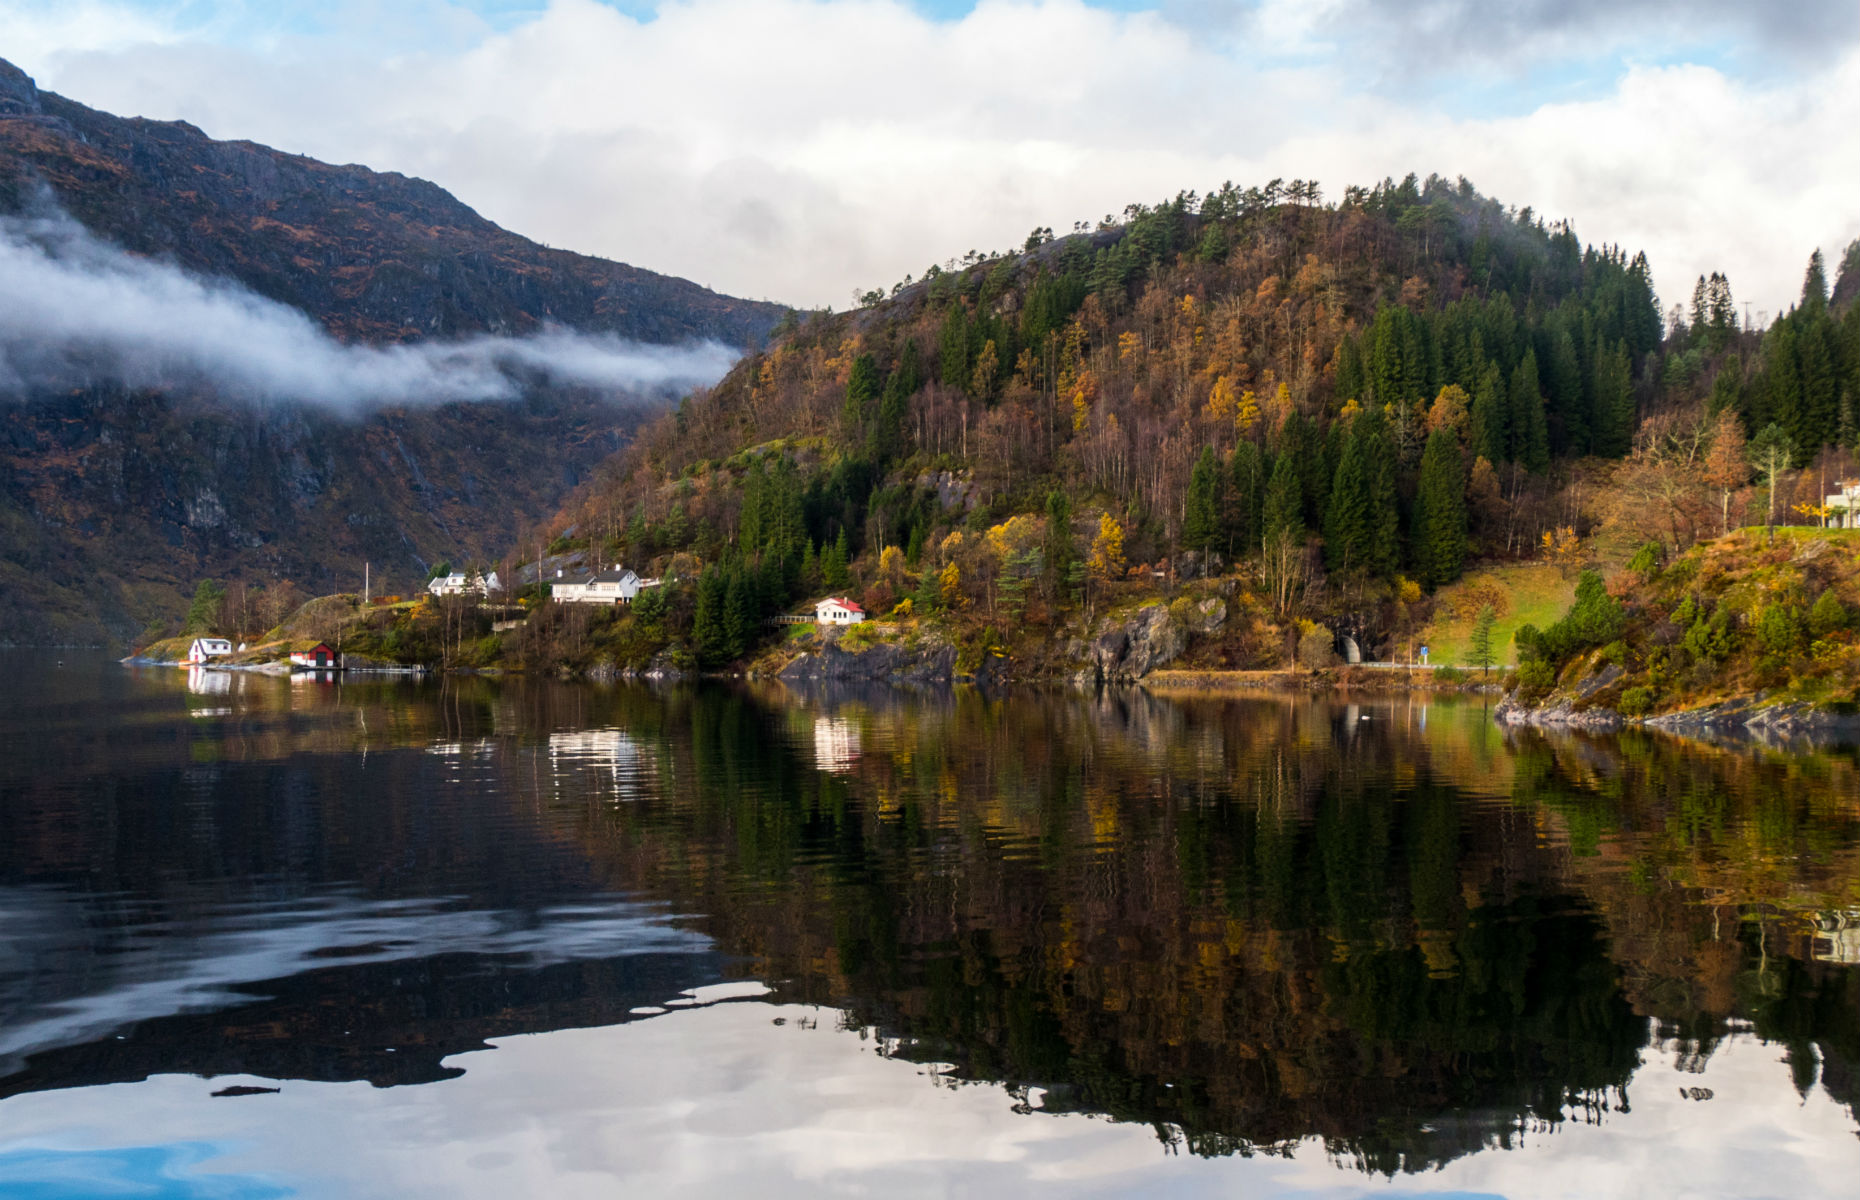 Stunning view of the Norwegian fjords within Bergen (Image: Select Stock/Shutterstock)